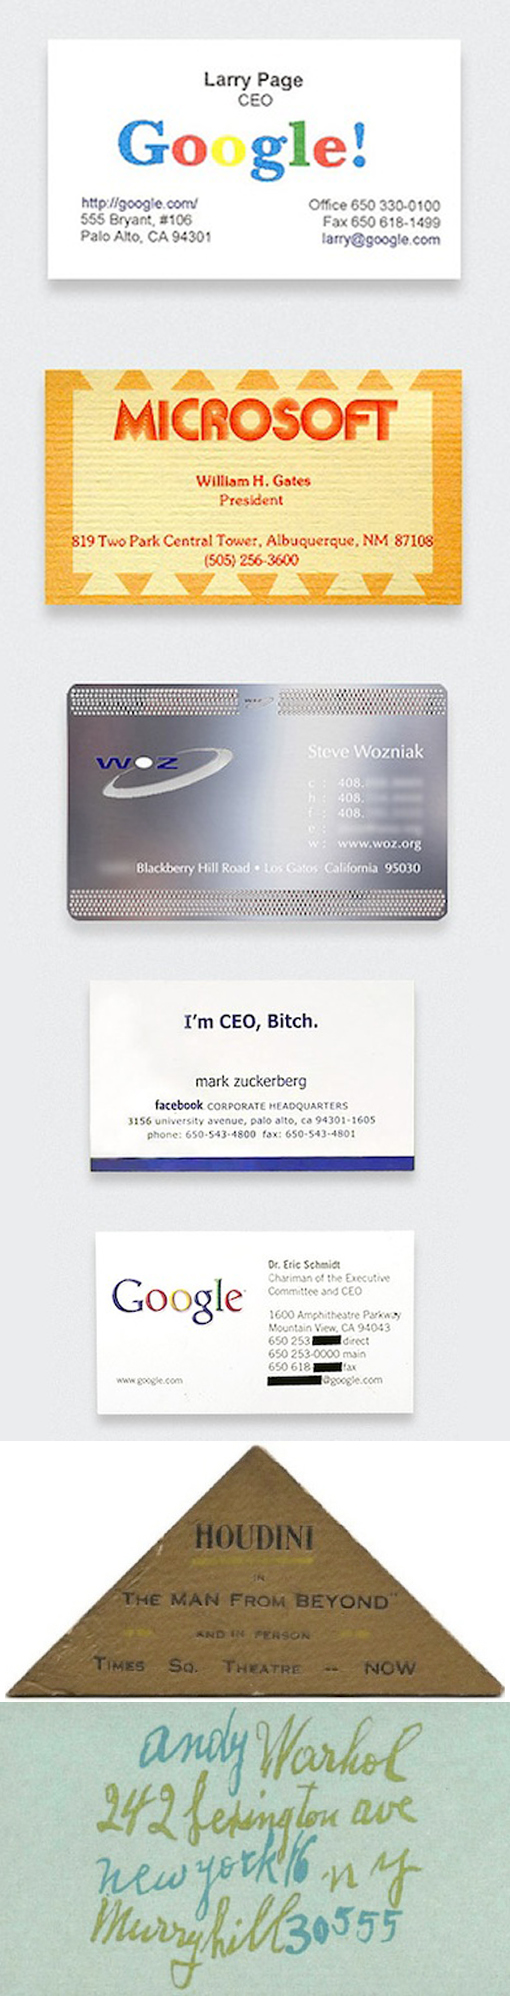 The Business Card Designs Of Seven Famous People | Business Cards ...